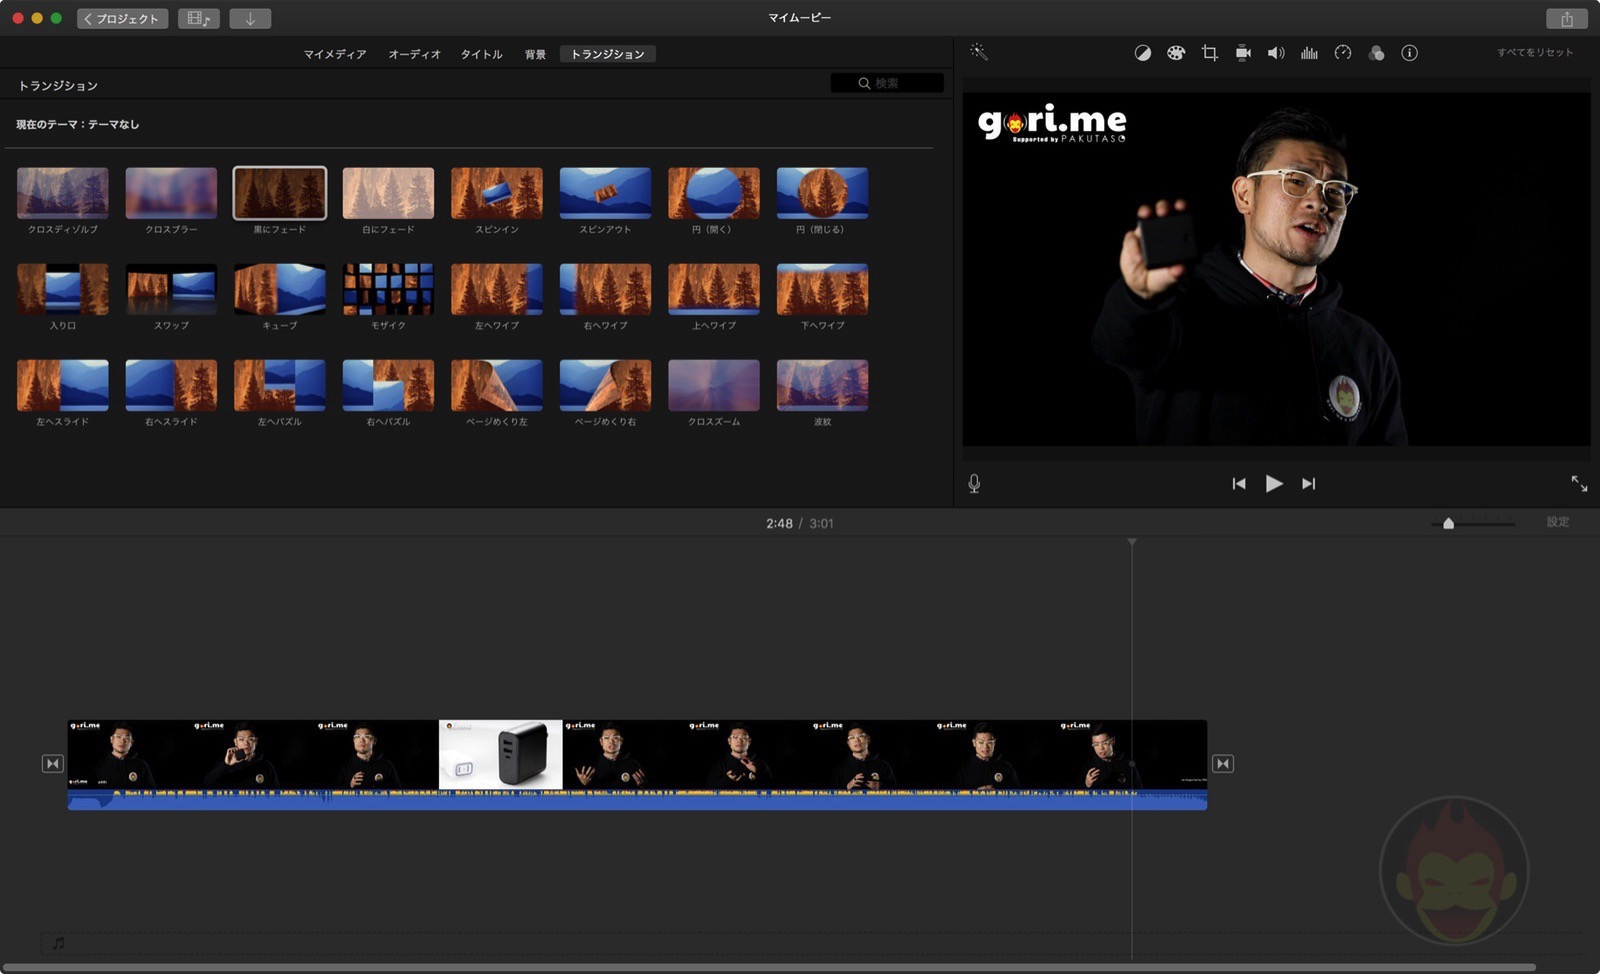 Using iMovie to export movies 01